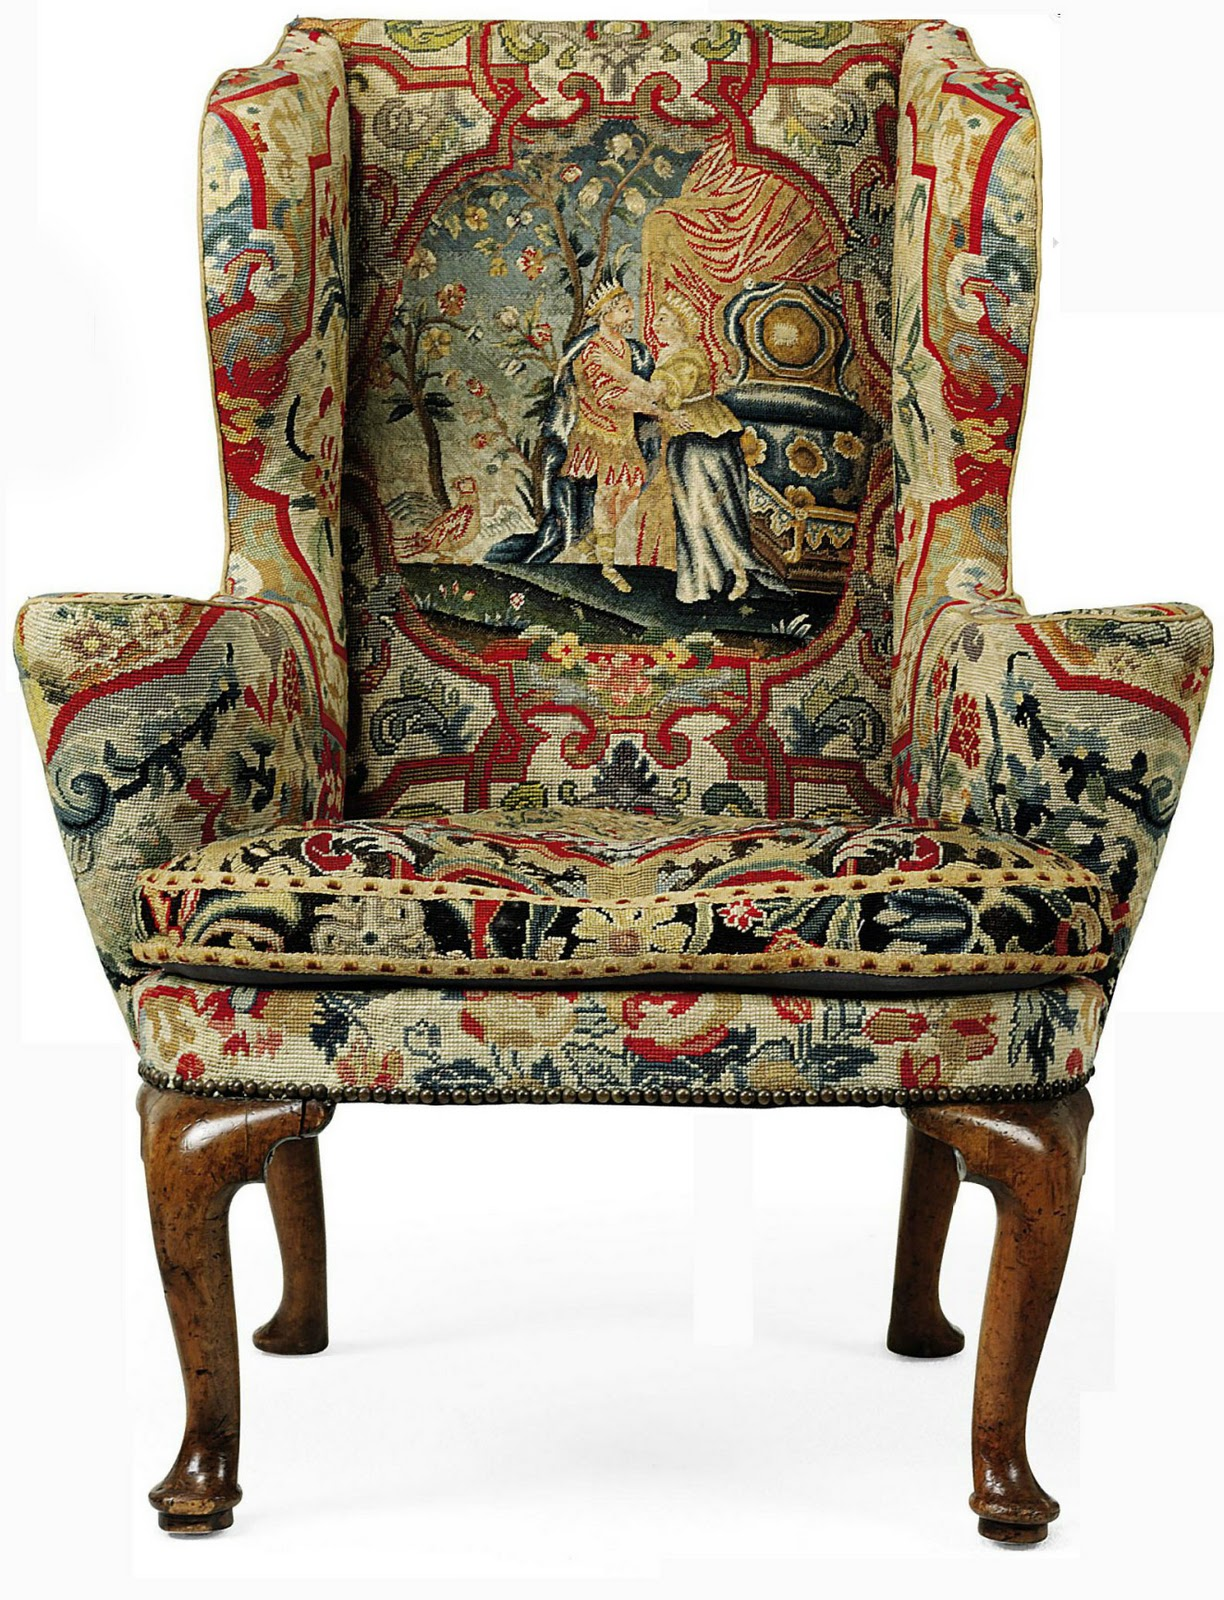 Antique wingback chairs - Christies Auction Nov 2010 55 000